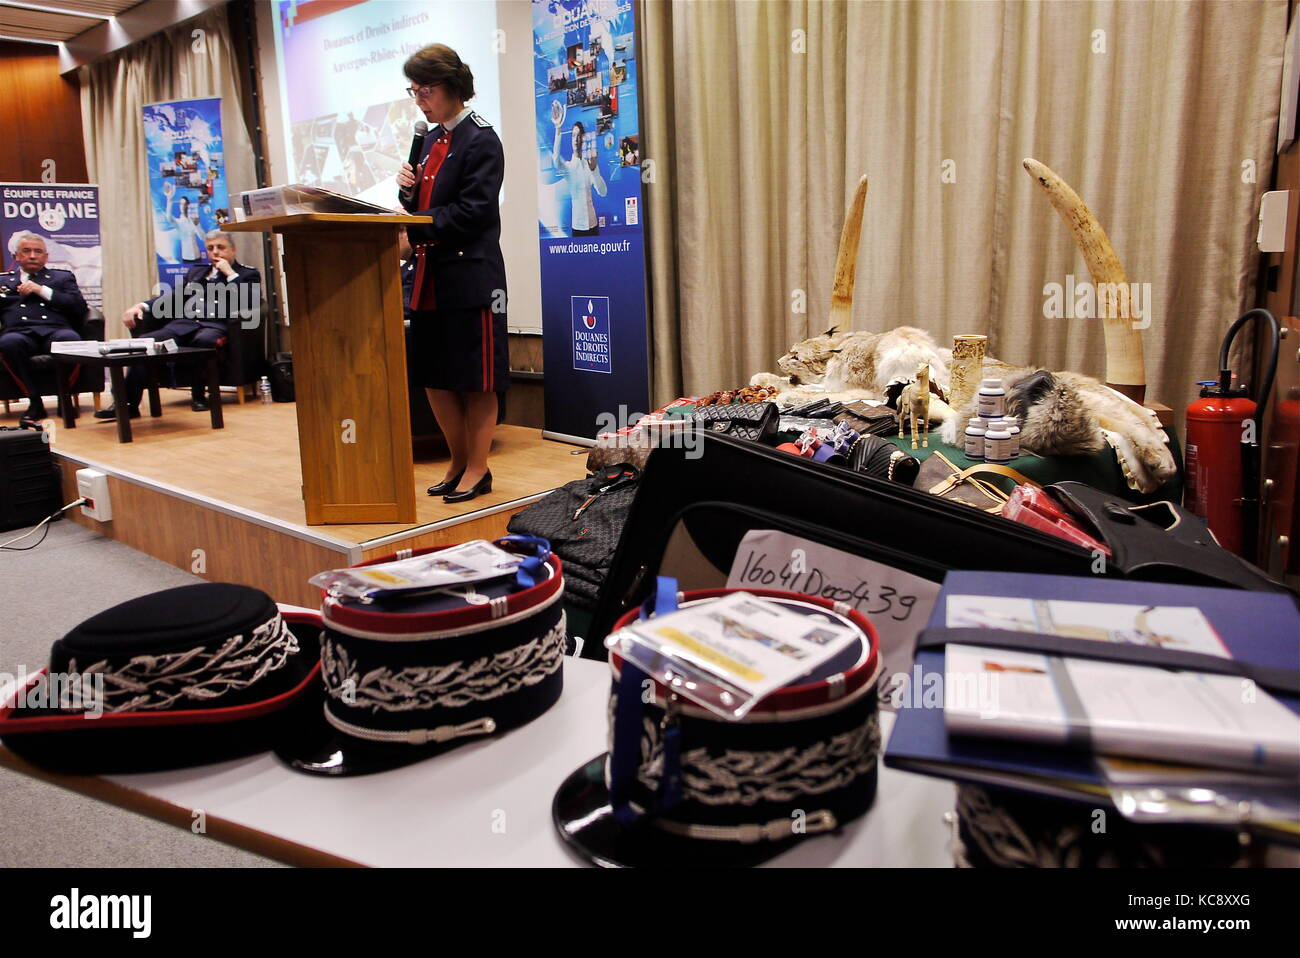 Presentation of illegal items seized by French Customs, Villeurbanne